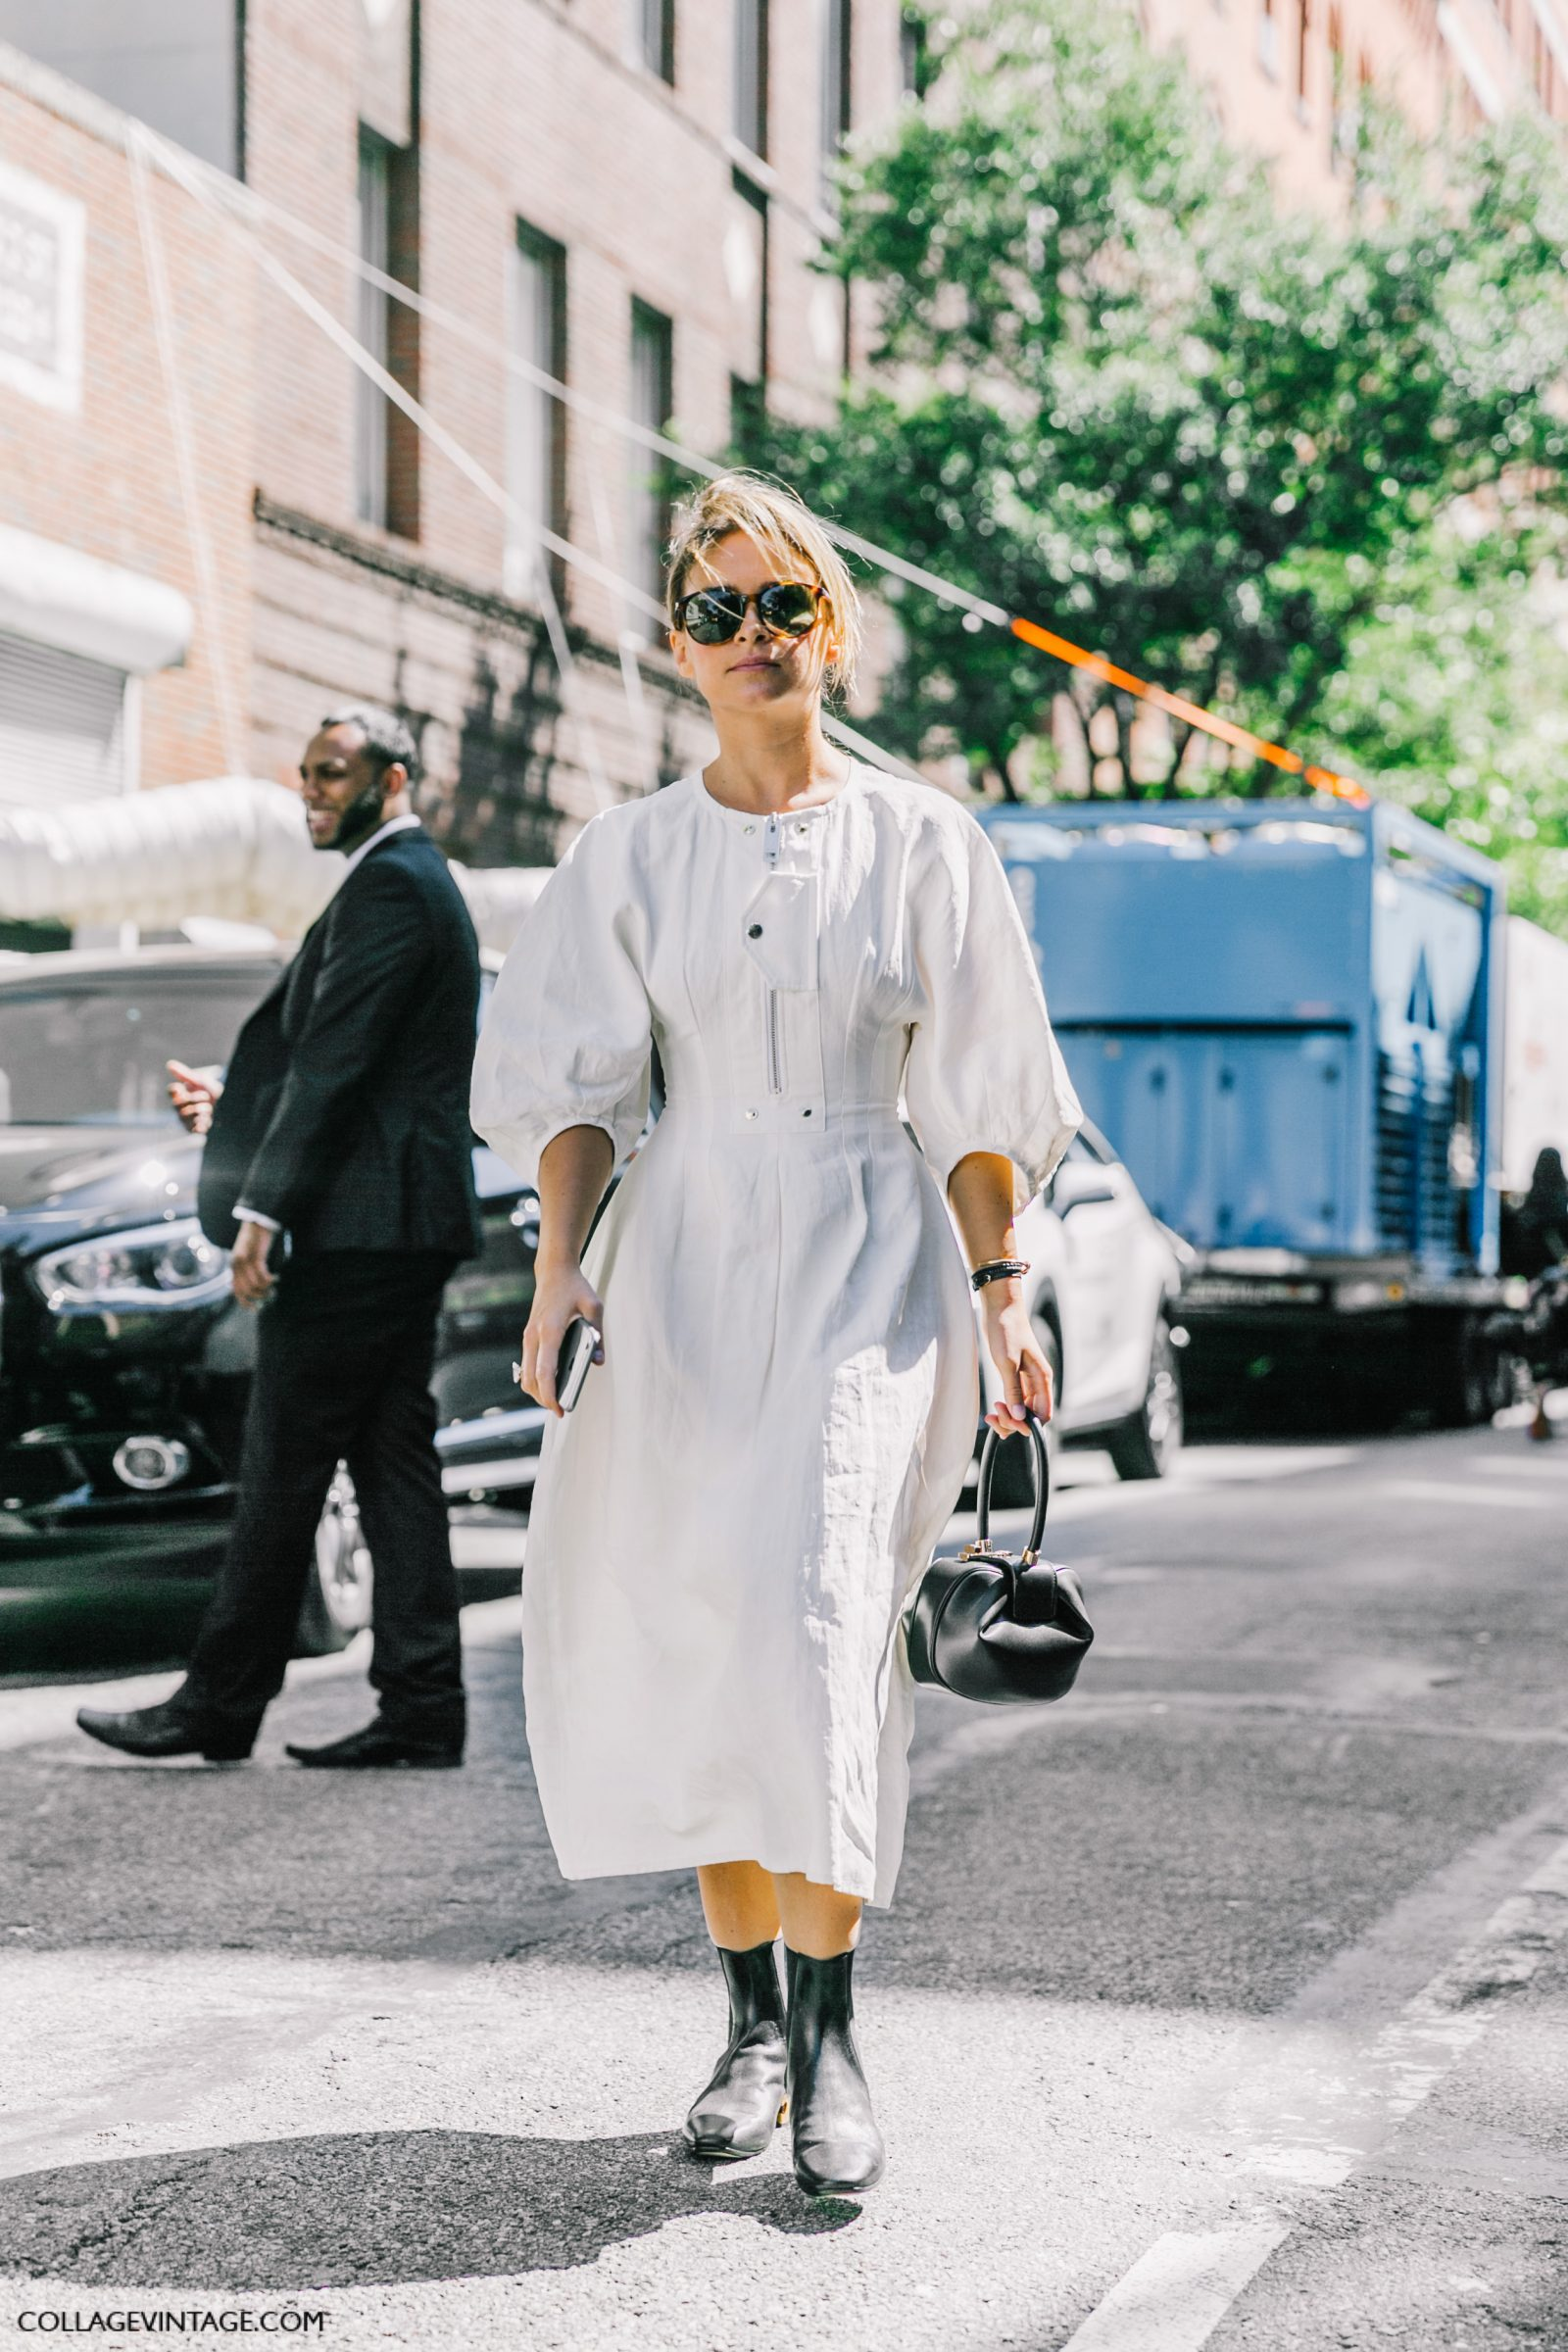 nyfw-new_york_fashion_week_ss17-street_style-outfits-collage_vintage-vintage-mansur_gavriel-rodarte-coach-41